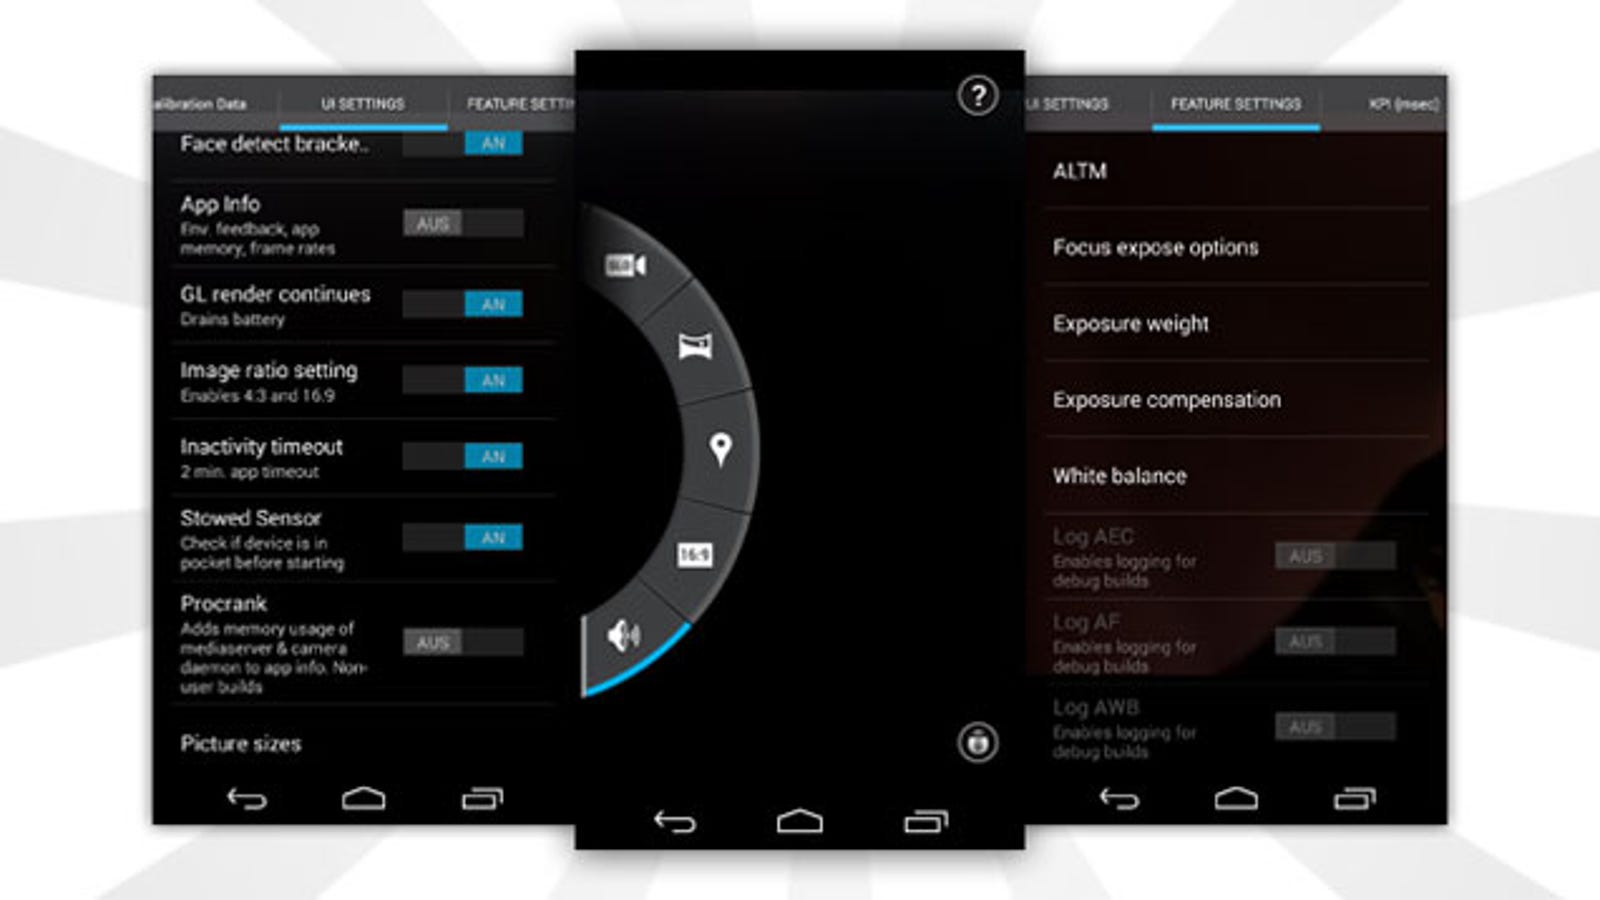 manual camera apk cracked download